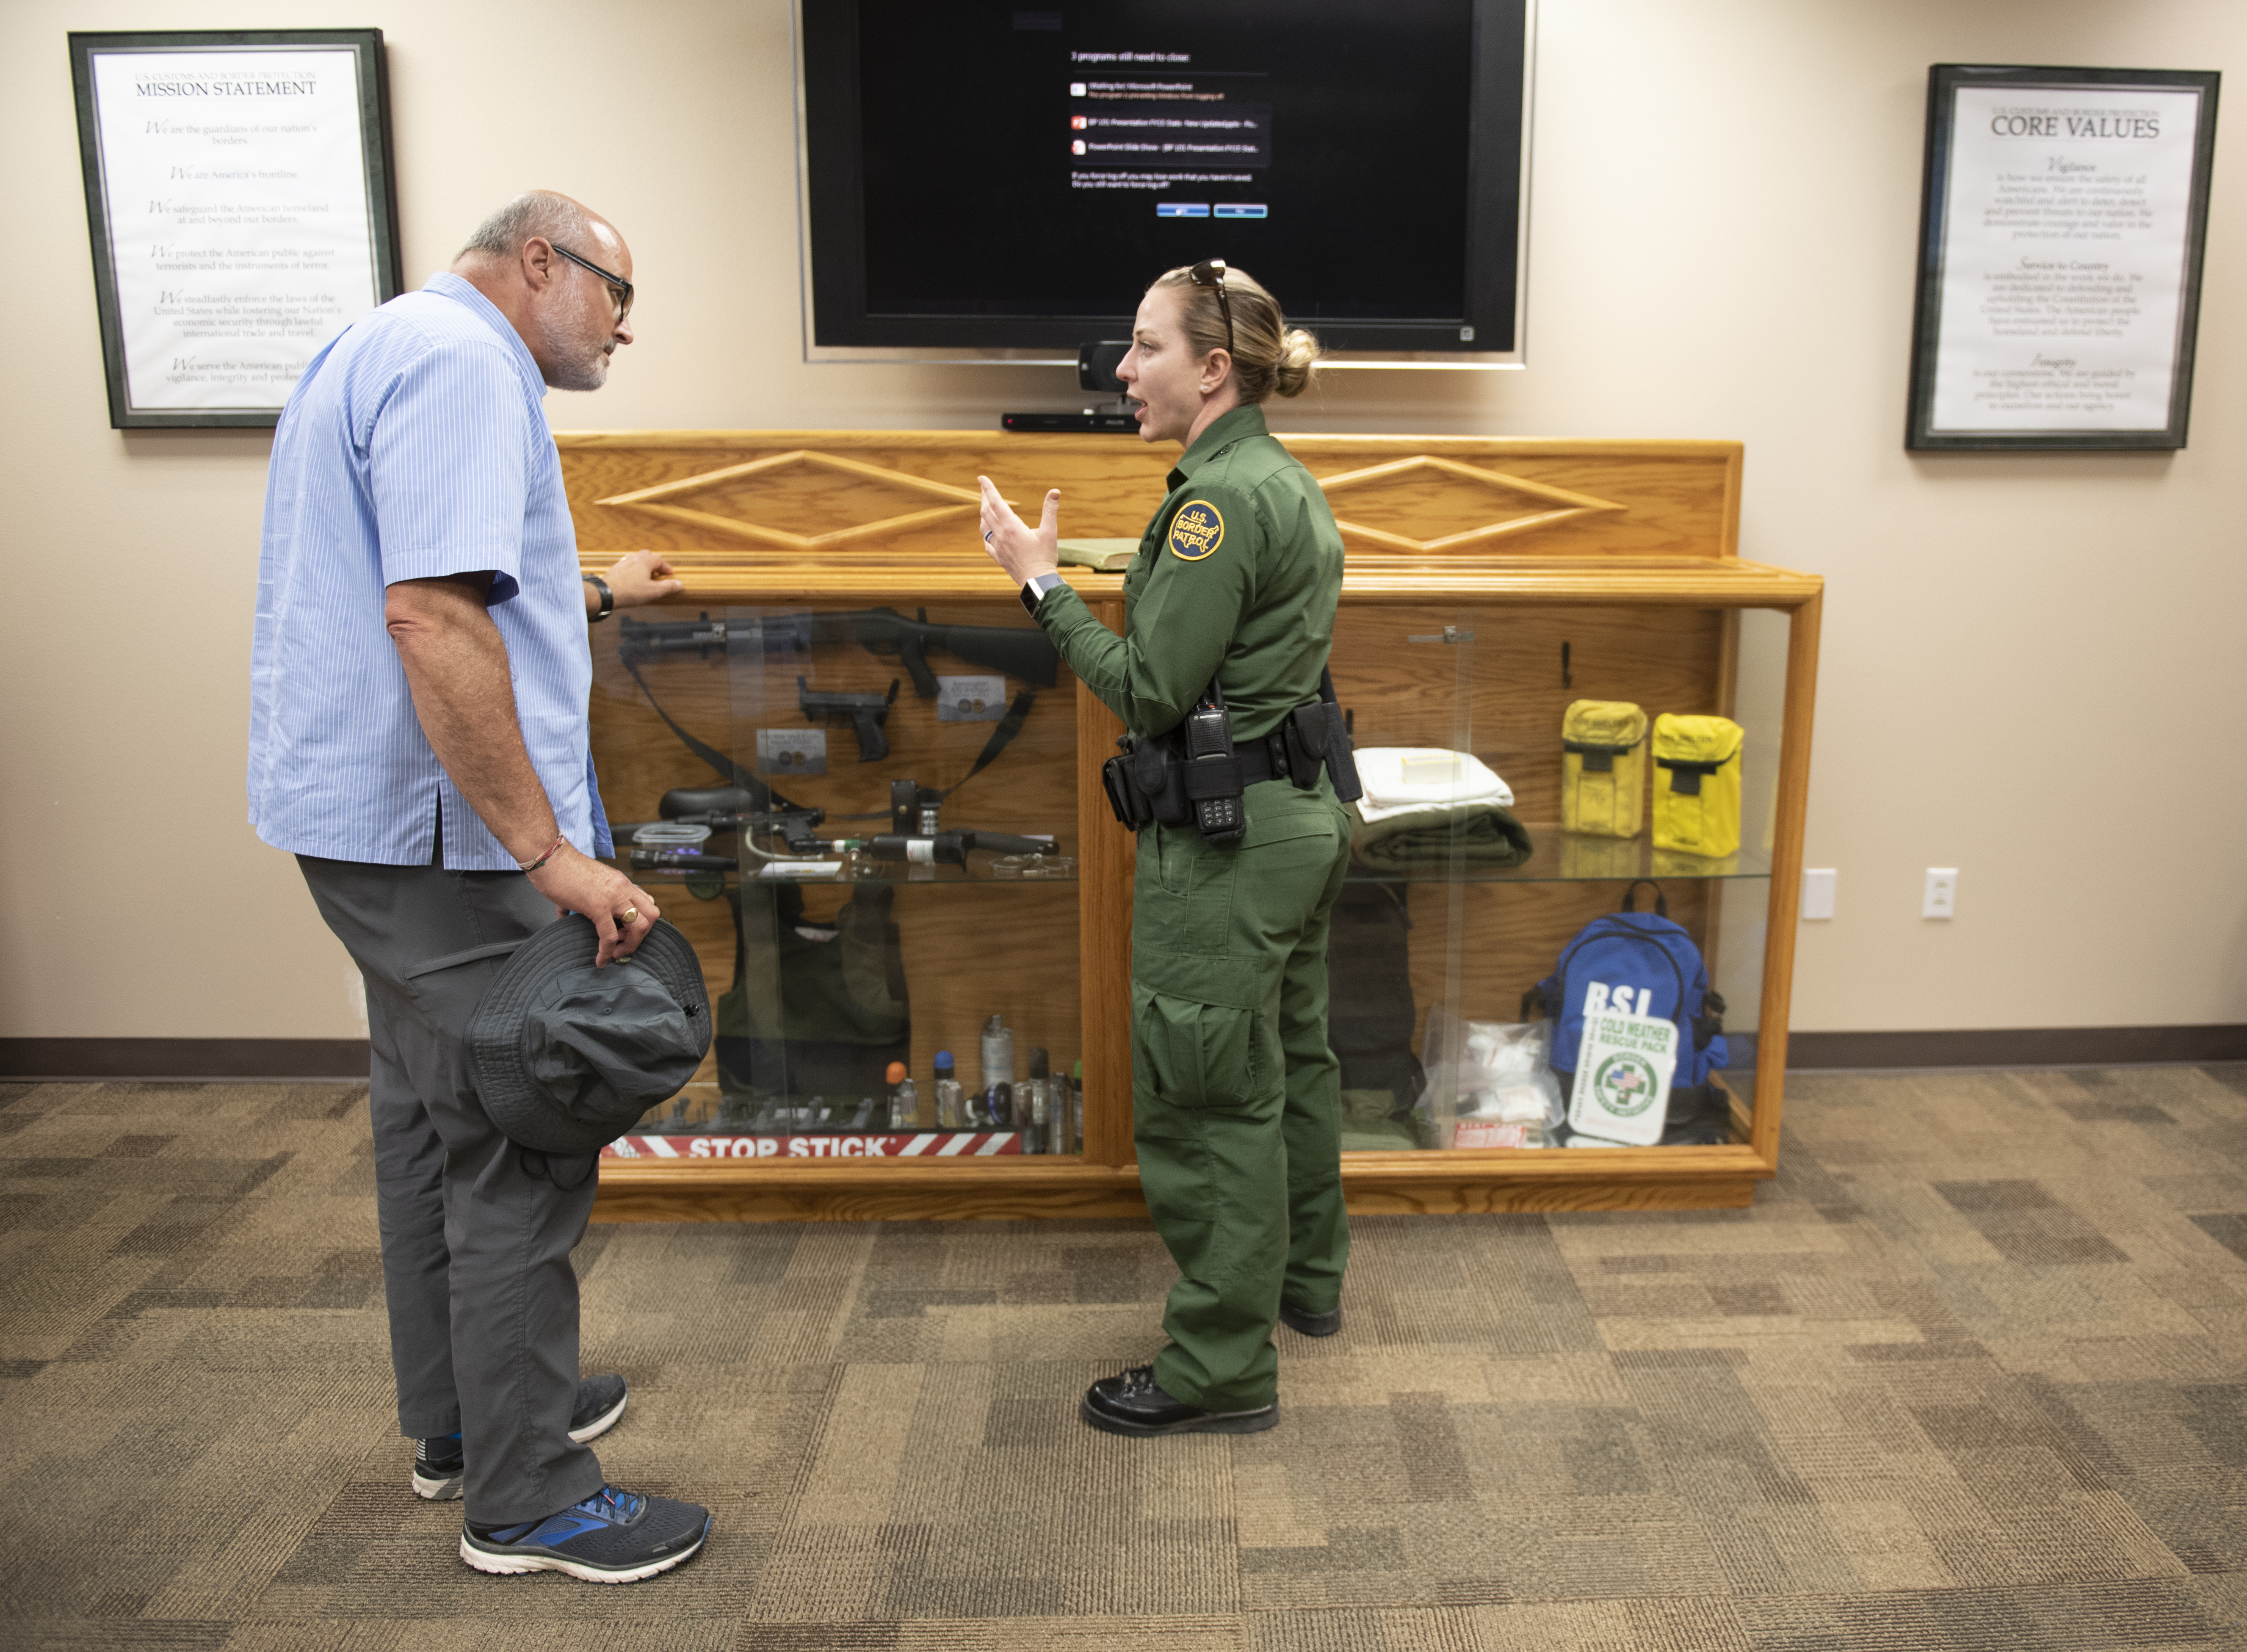 Professor Norrie Palmer learns about the tools used by Border Patrol Officers from Agent Renteria at the Border Patrol San Diego Sector Headquarters.